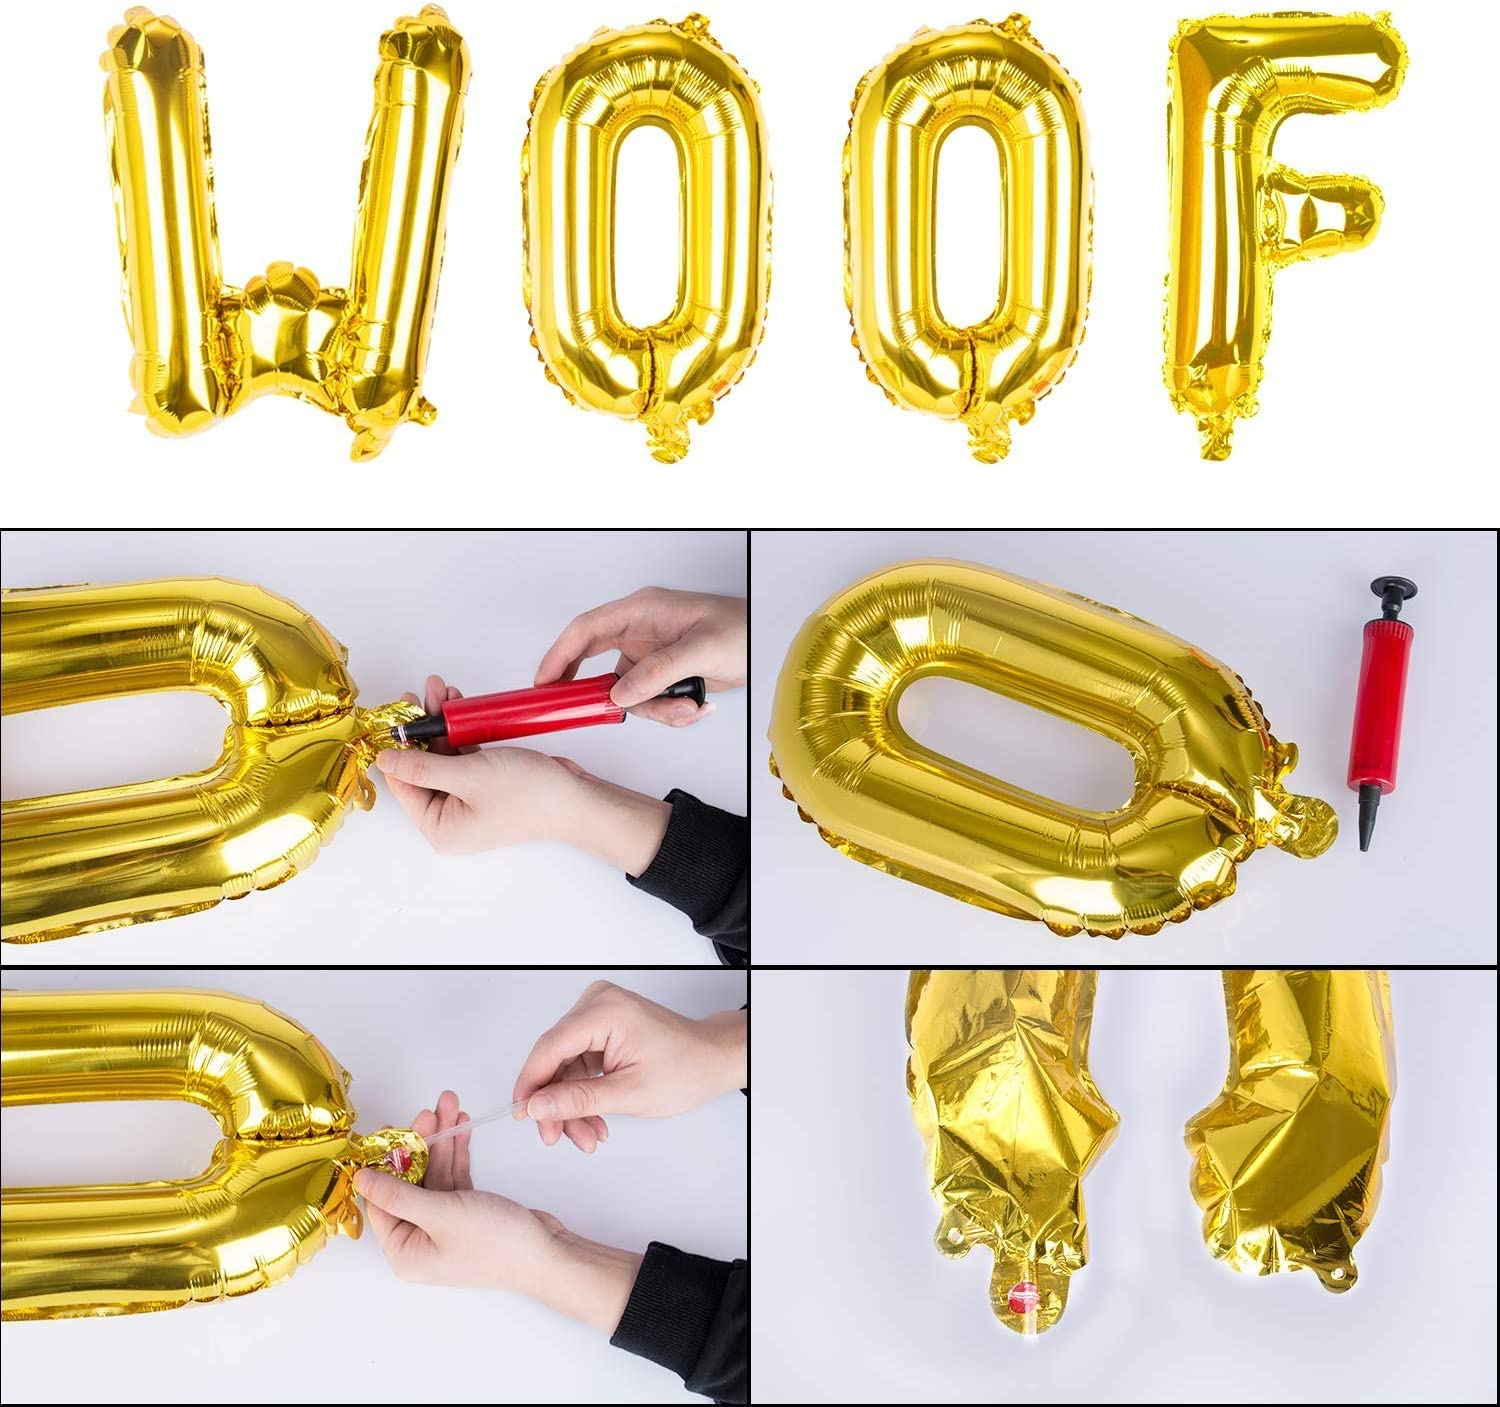 25PCS Biodegradable Latex Balloons for Dog Birthday Decorations Including WOOF Ballons Lattook Dog Birthday Party Decoration Supplies